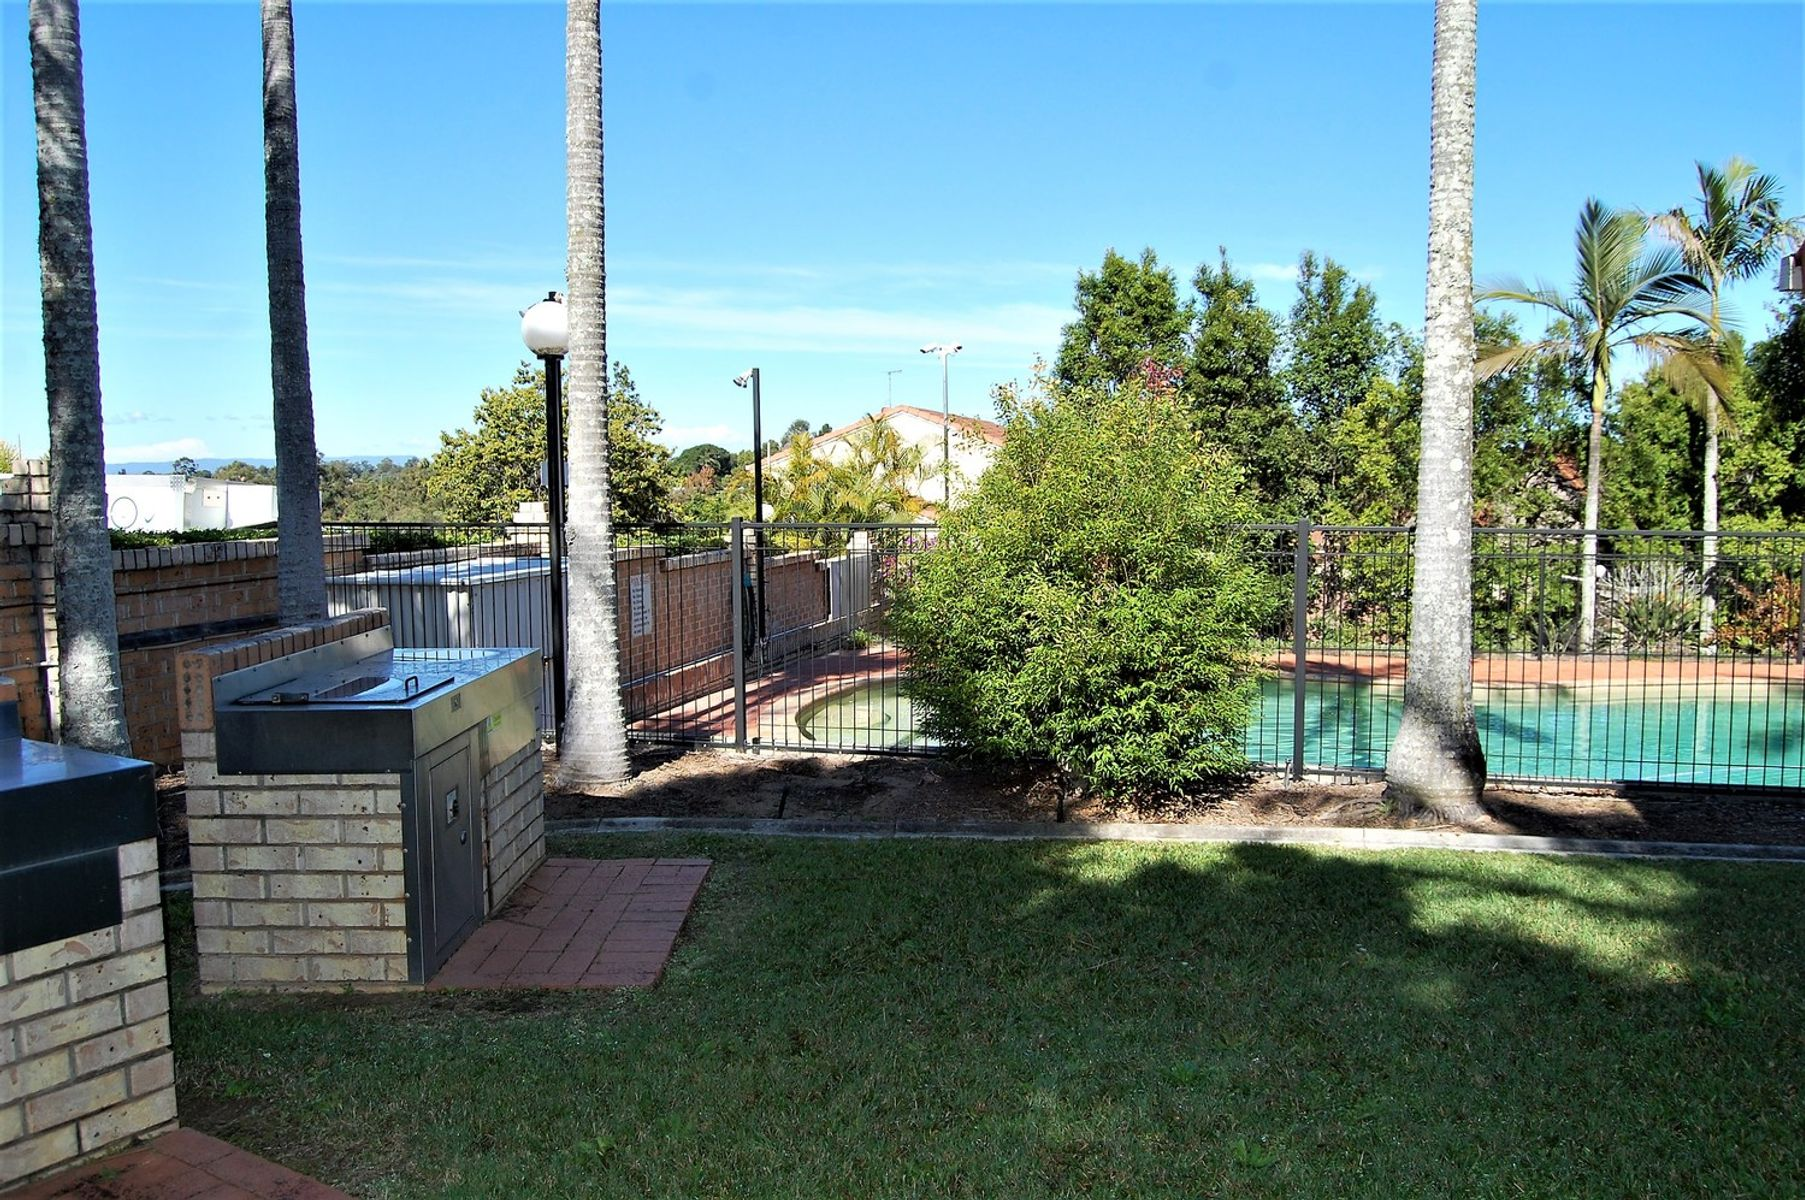 19/110 Johnson Rd, Hillcrest, QLD 4118